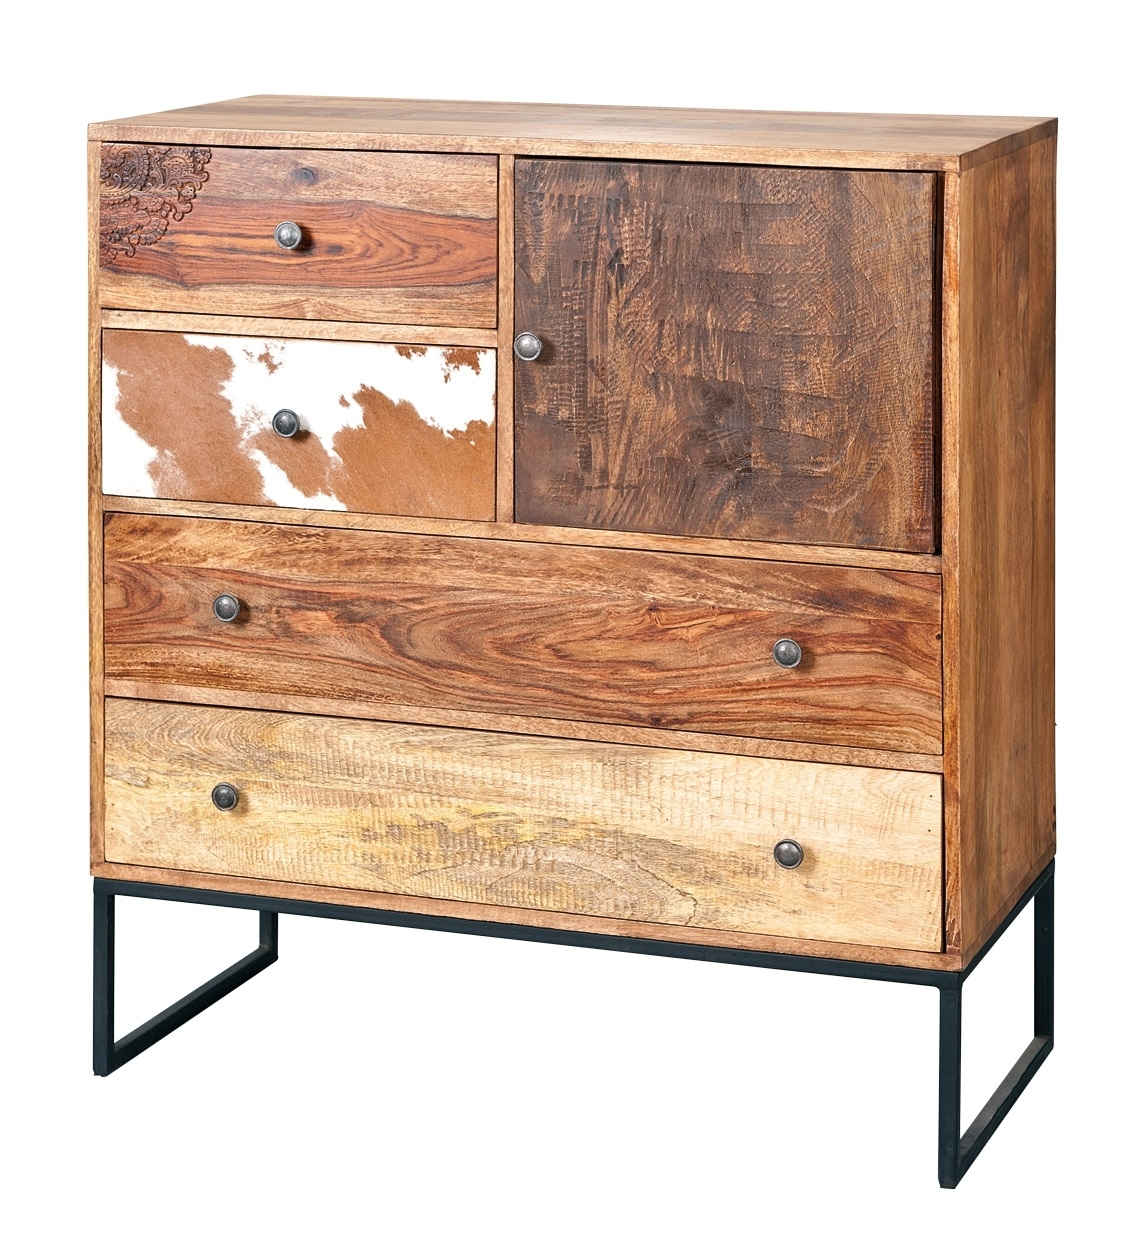 Natural Look Chest Of Drawers In Mango Wood 25607 Furniture intended for Mango Wood 2-Door/2-Drawer Sideboards (Image 20 of 30)